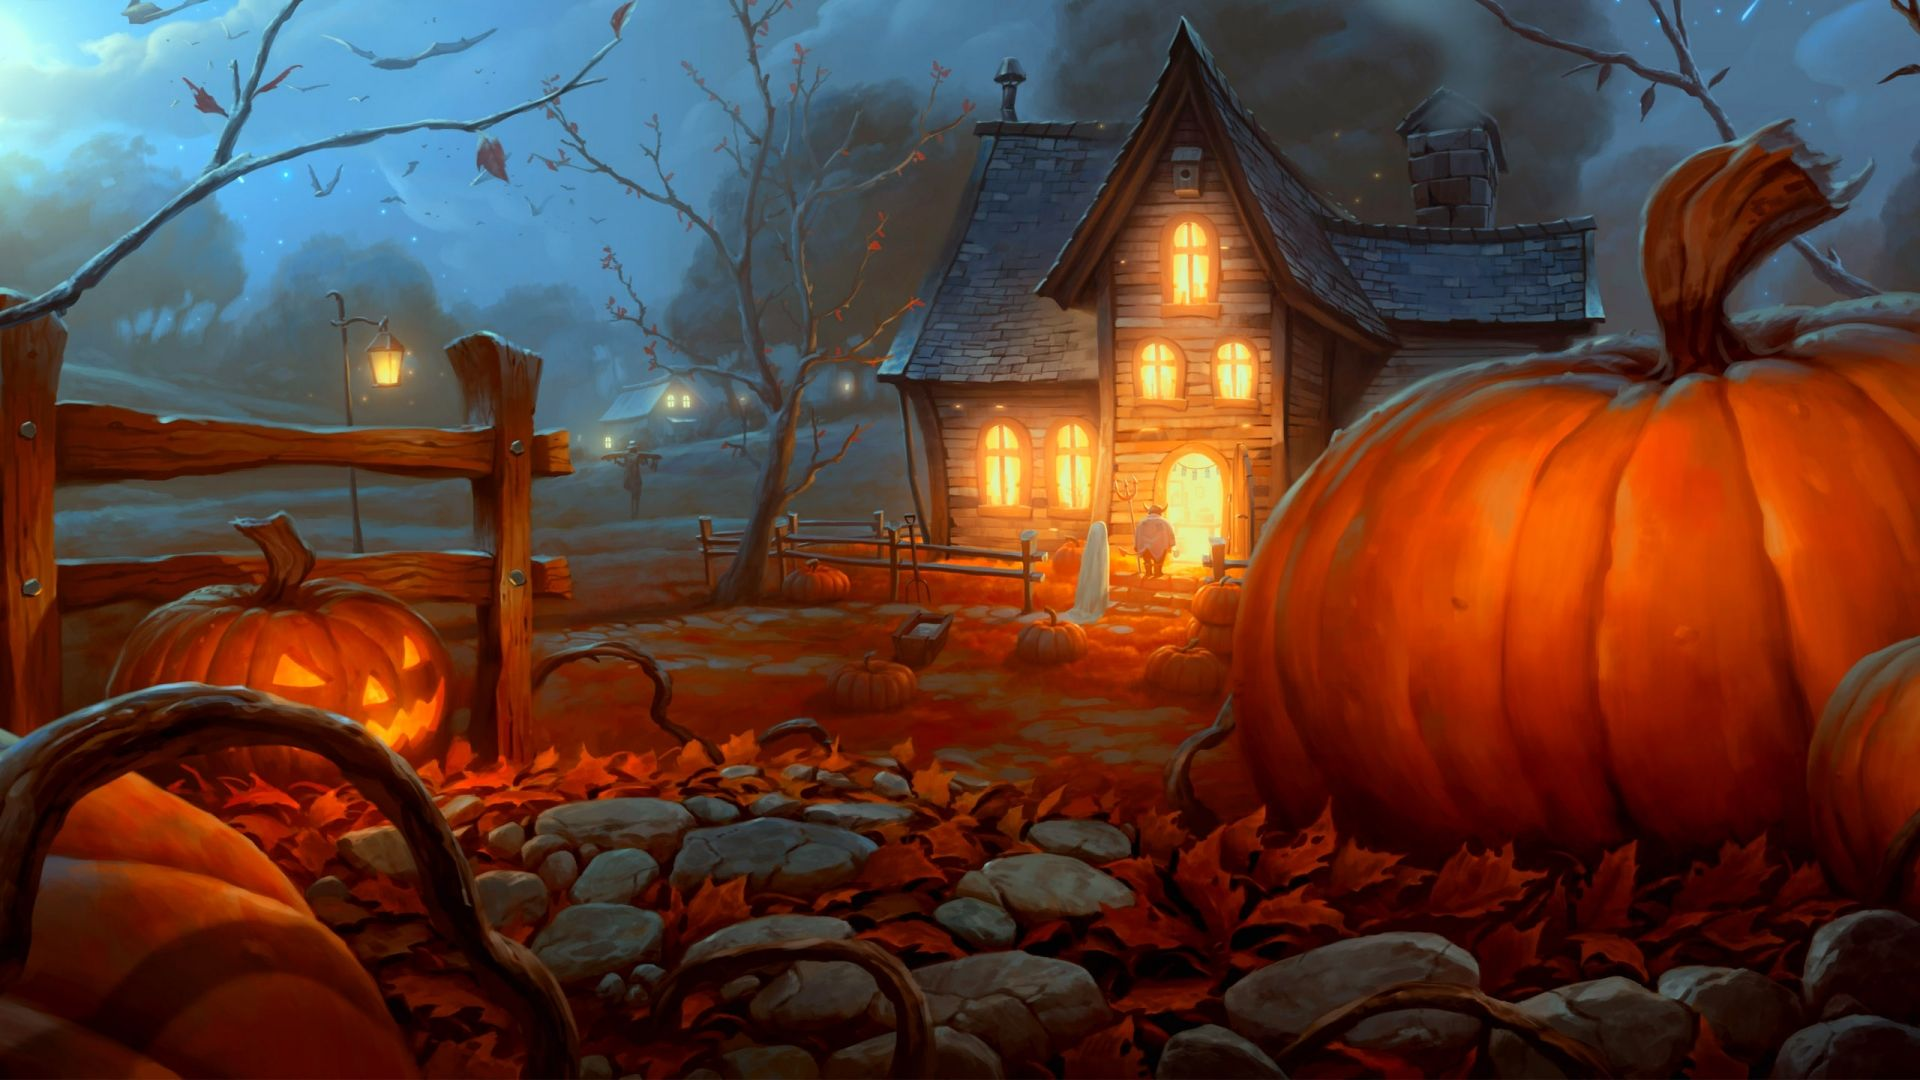 Cool Wallpaper Halloween Red - red-color-halloween-wallpaper  Best Photo Reference_754815.jpg